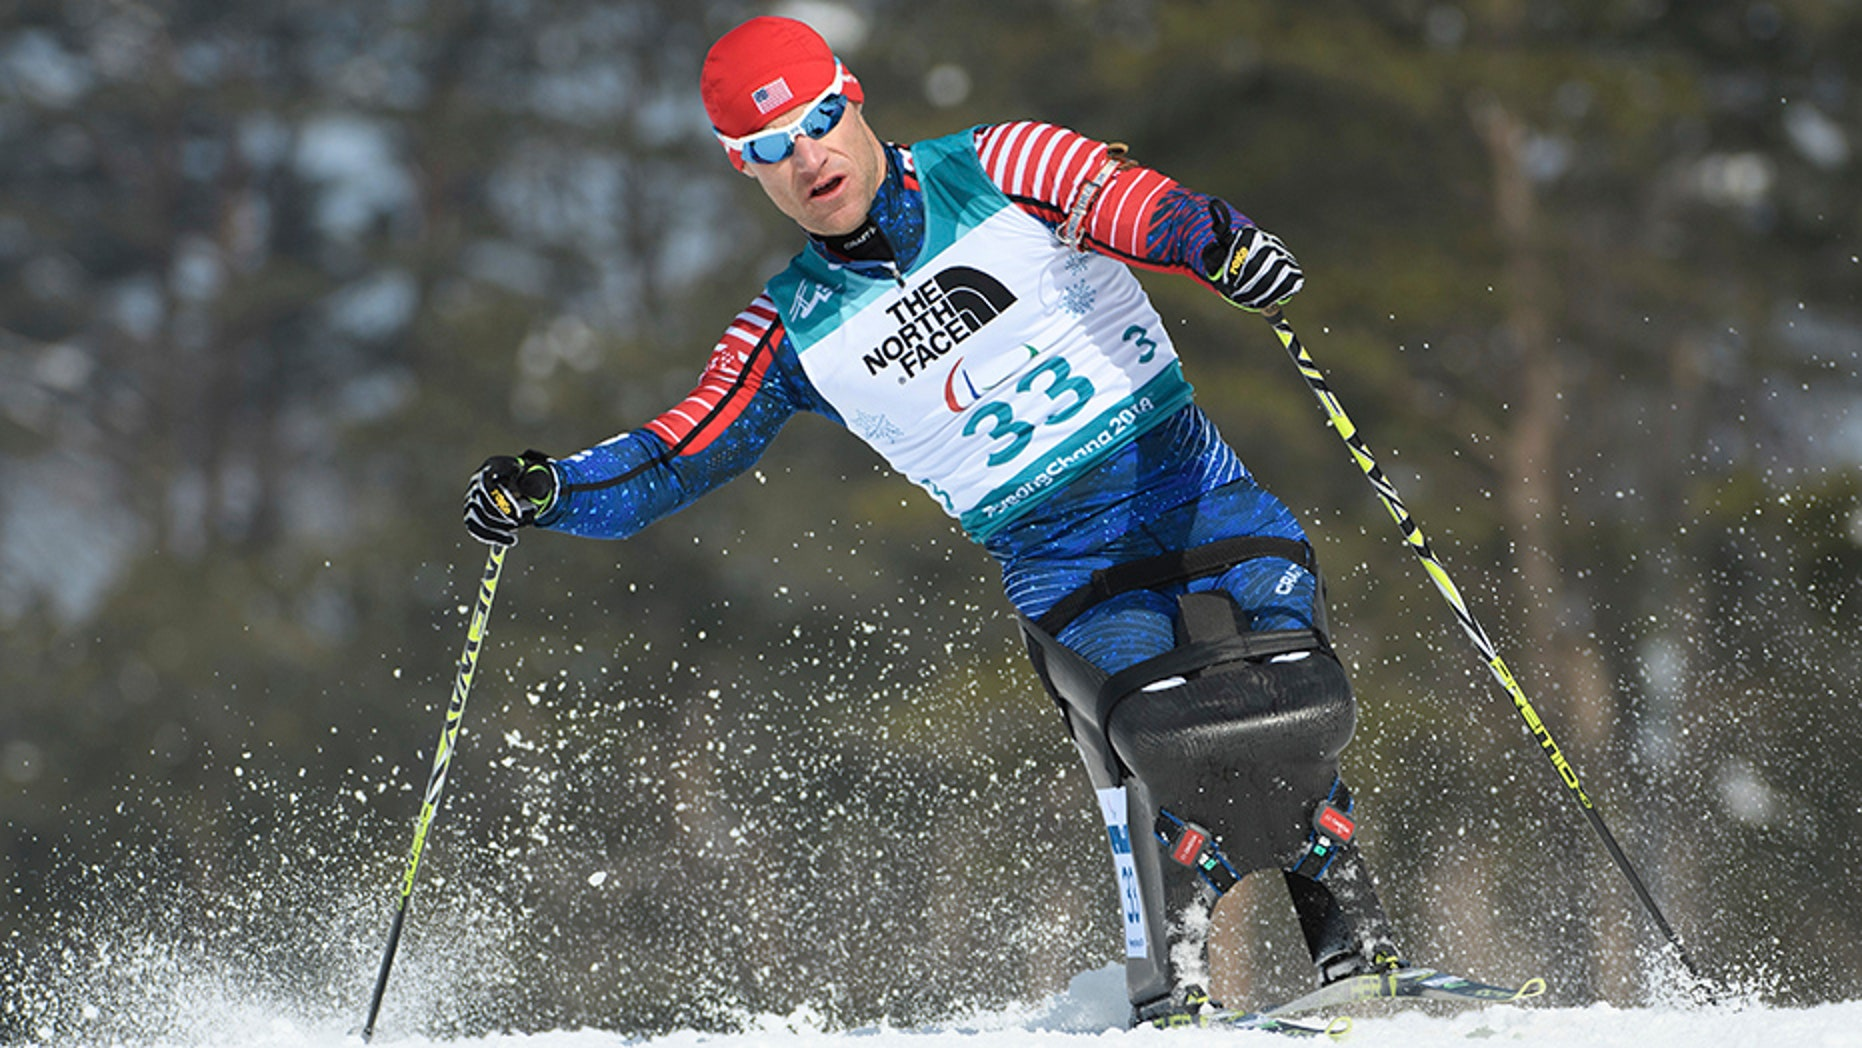 Dan Cnossen earned a gold medal in the first men's biathlon event of the PyeongChang Paralympics.